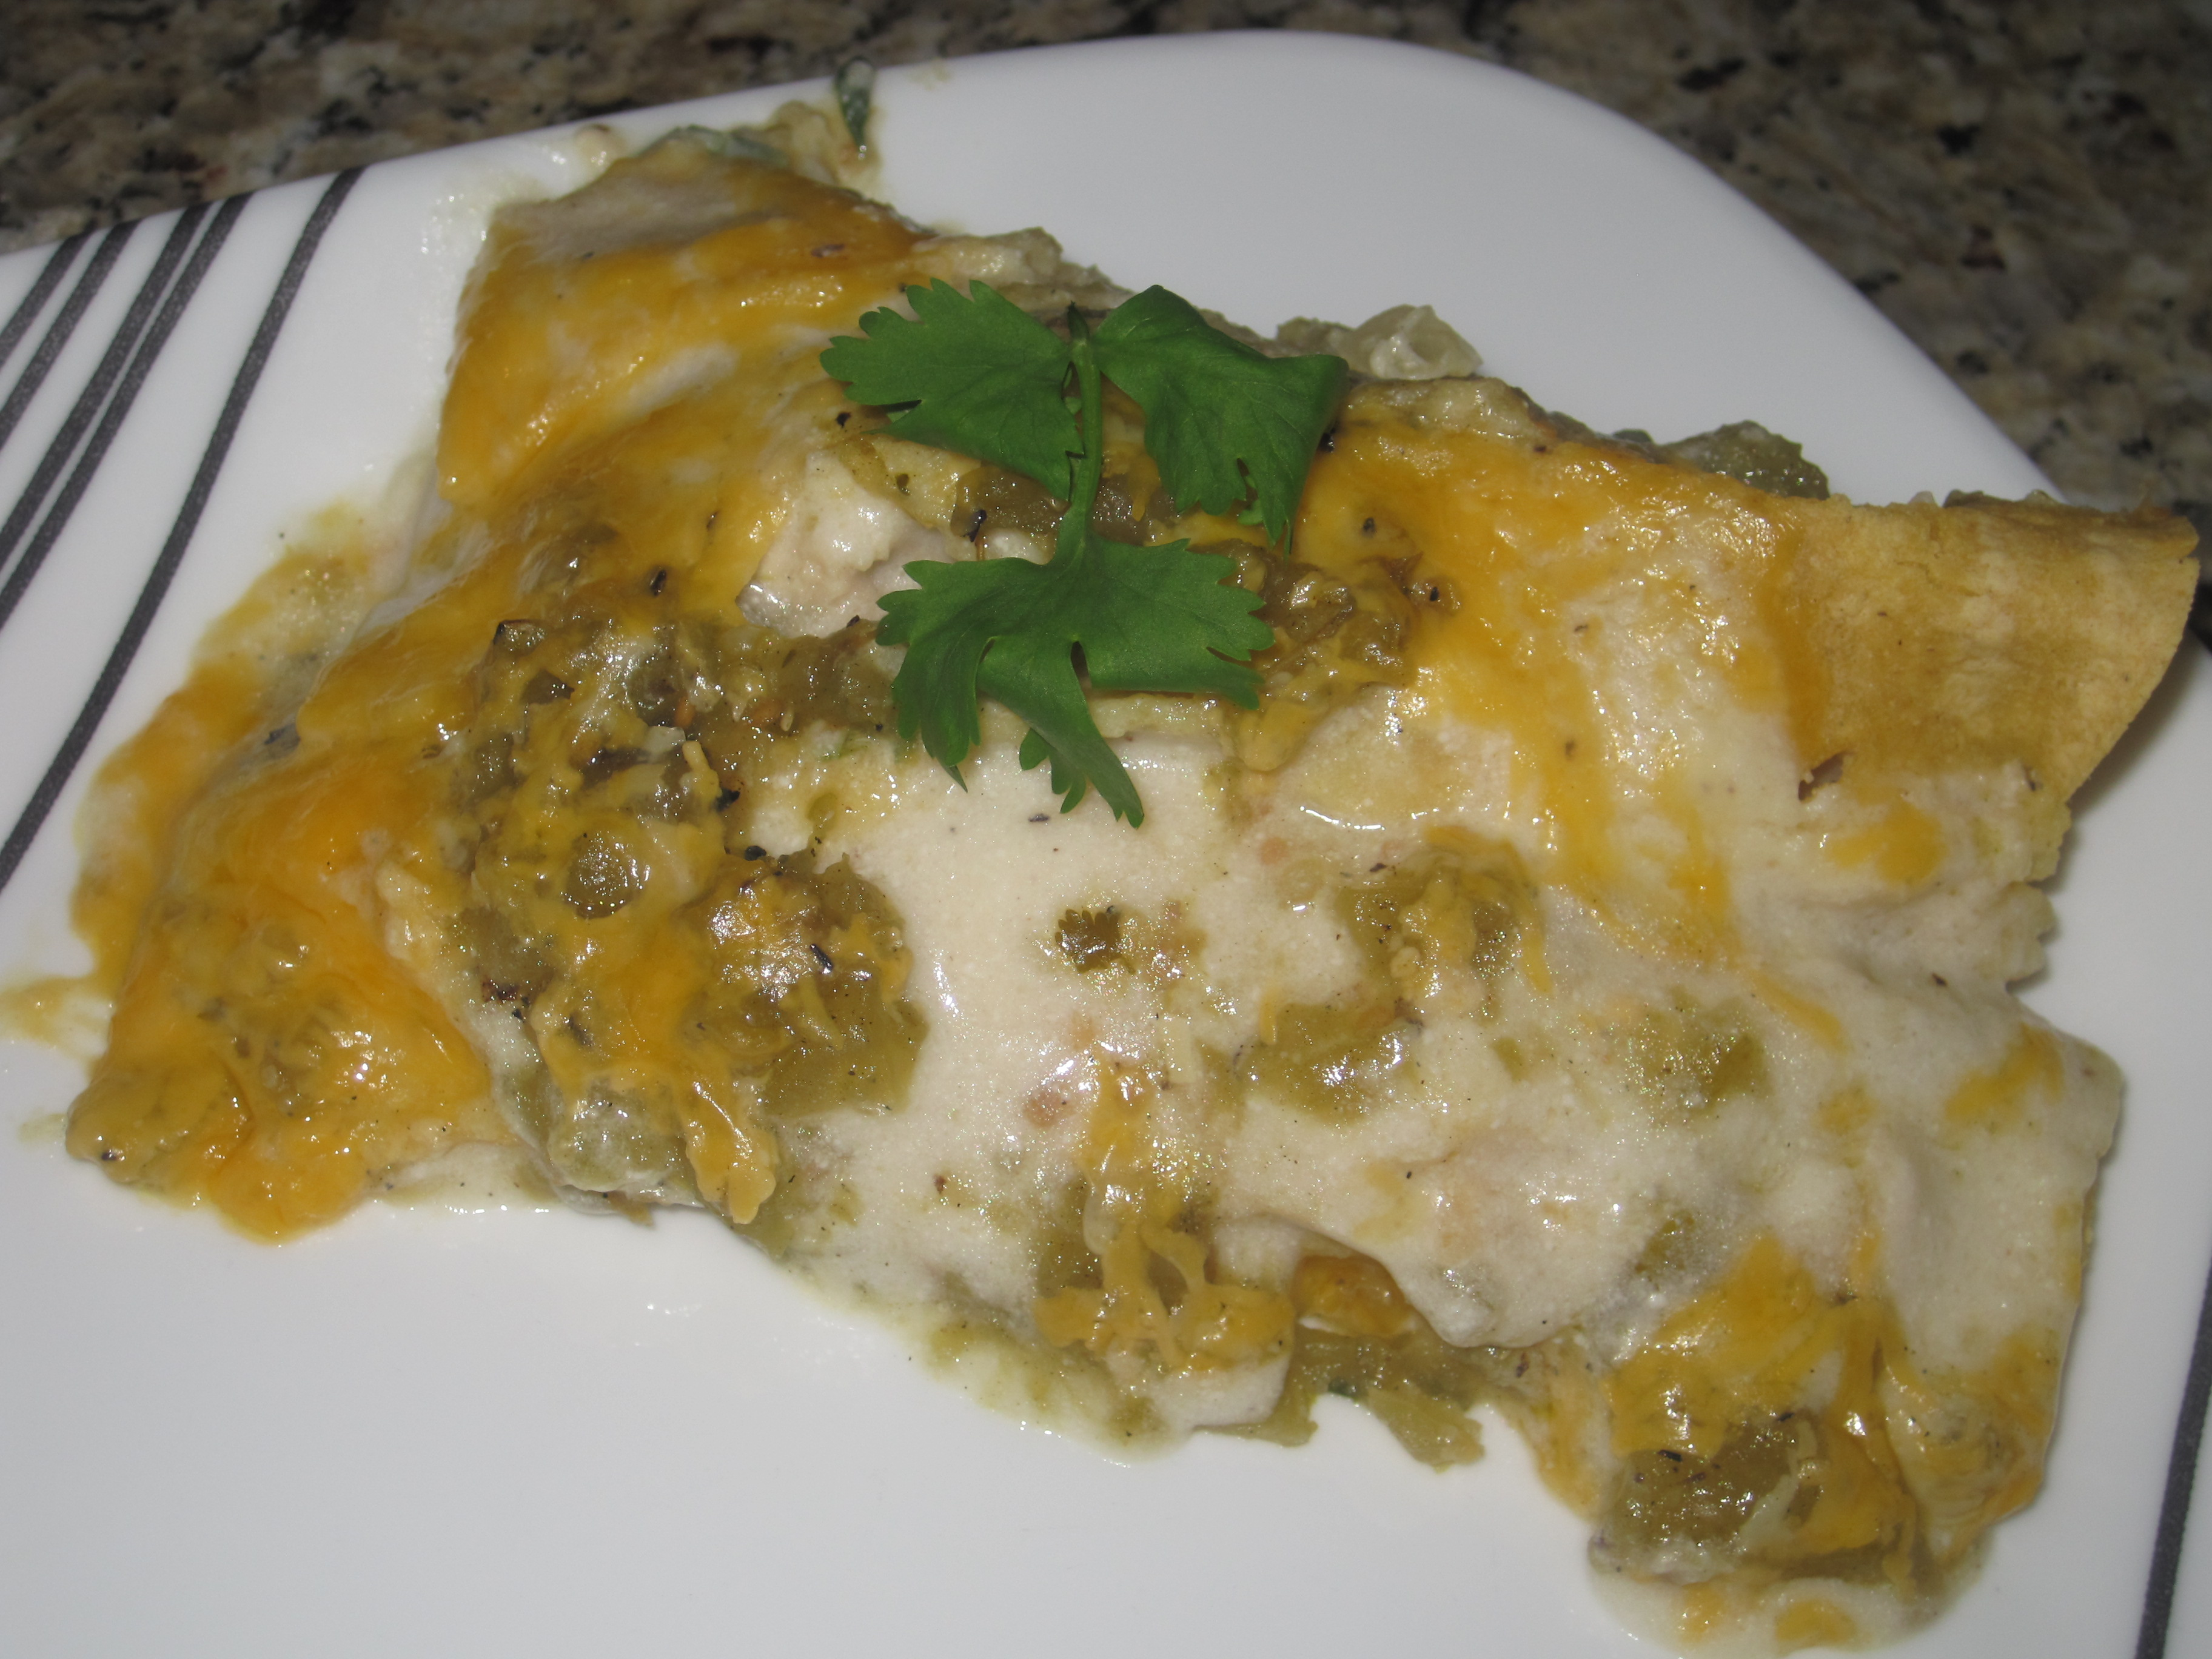 enchiladas. This time we stuffed them with cheesey chicken and spinach ...